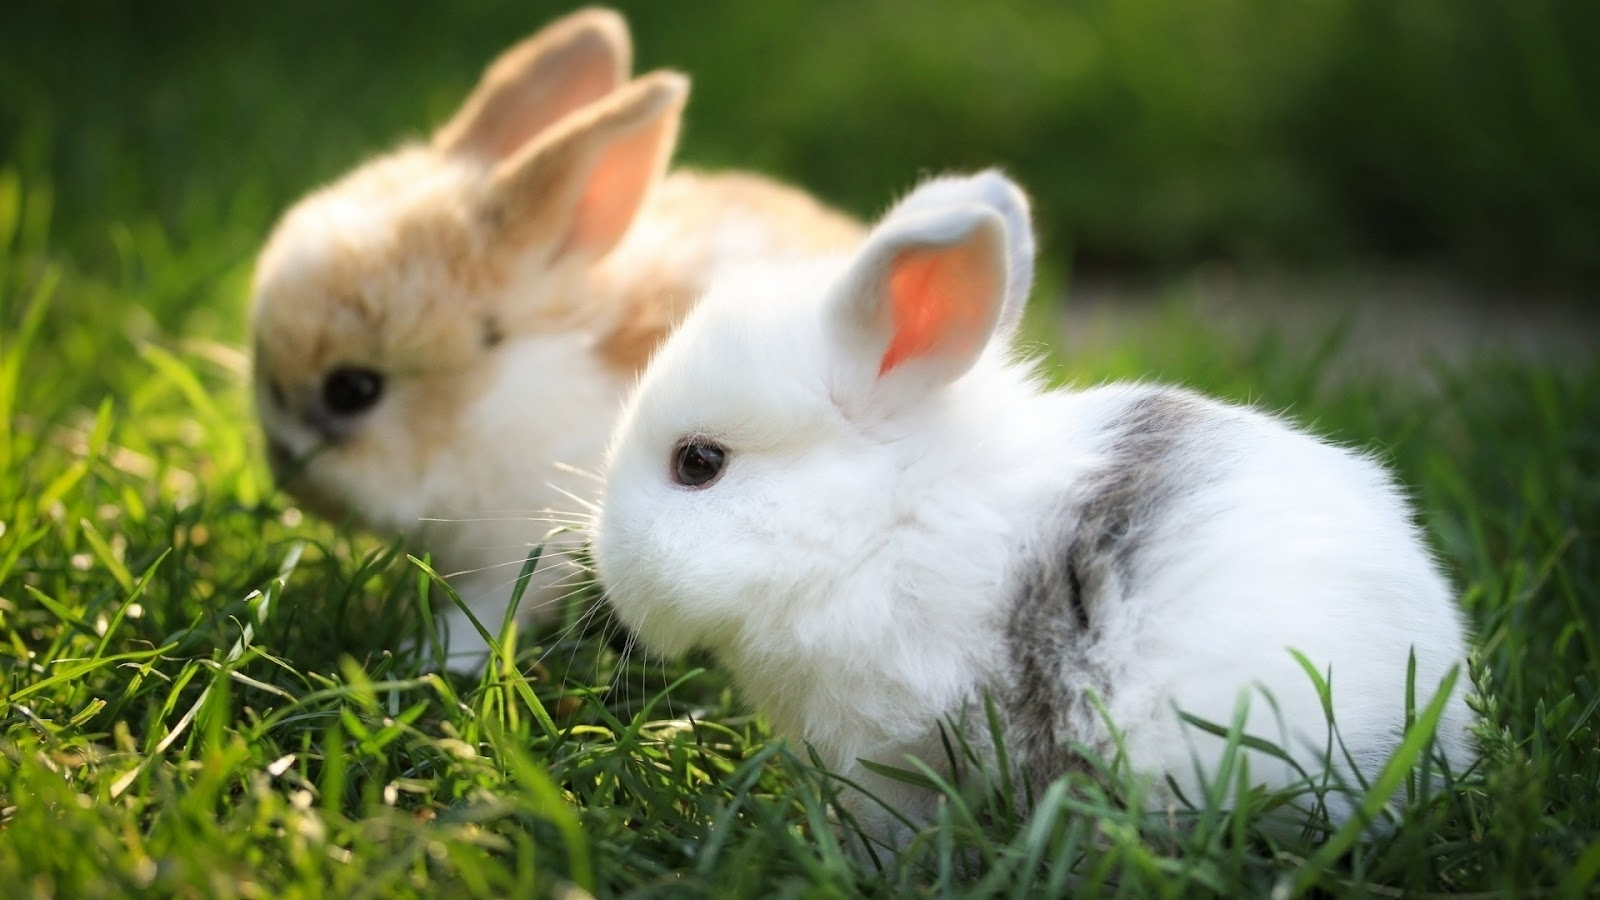 cute baby bunny wallpapers, awesome hdq live cute baby bunny